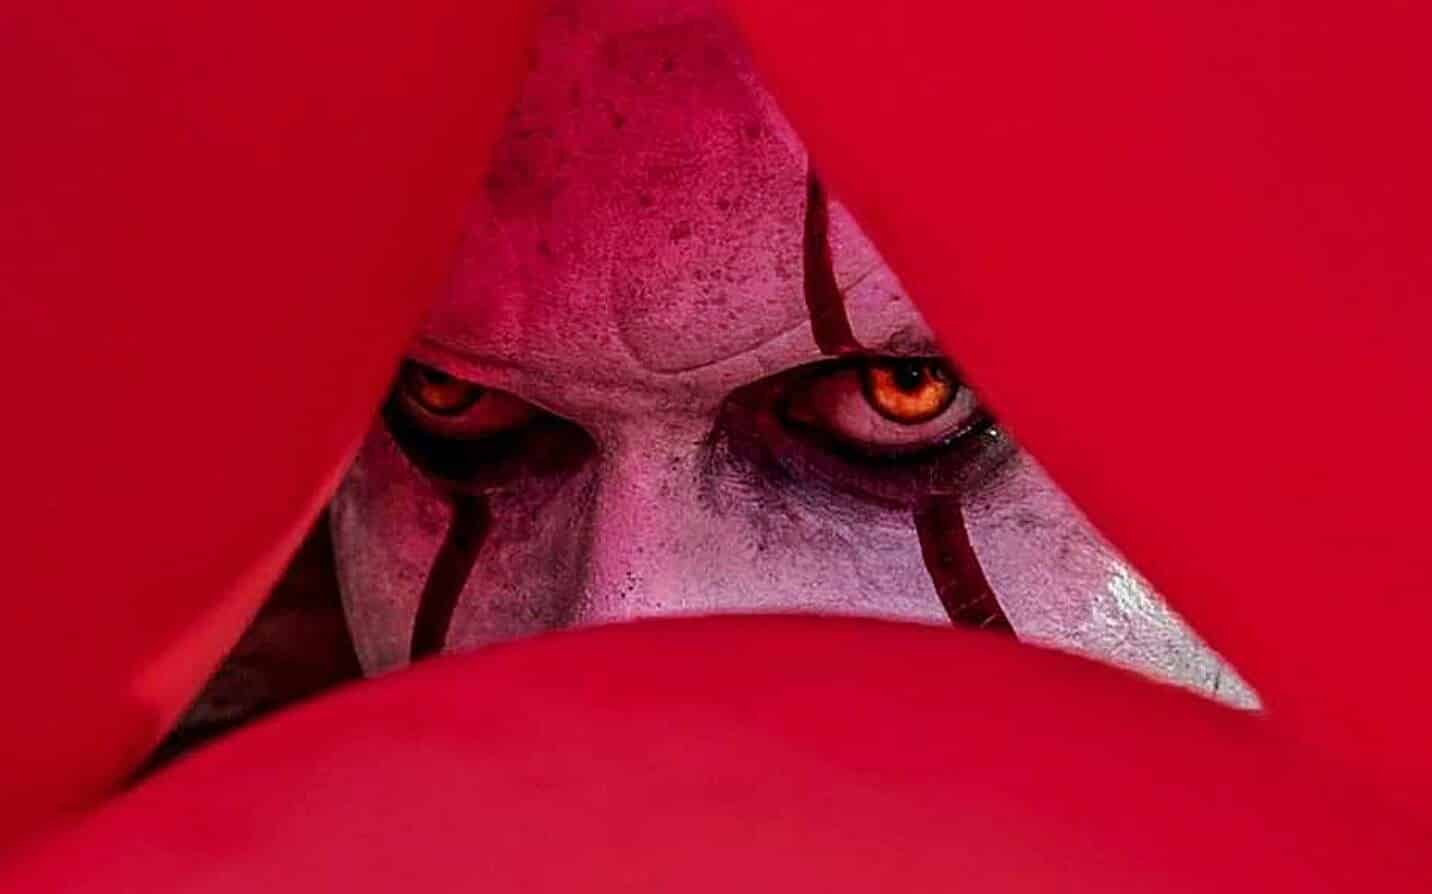 u0026 39 it  chapter 2 u0026 39  trailer is coming soon says producer